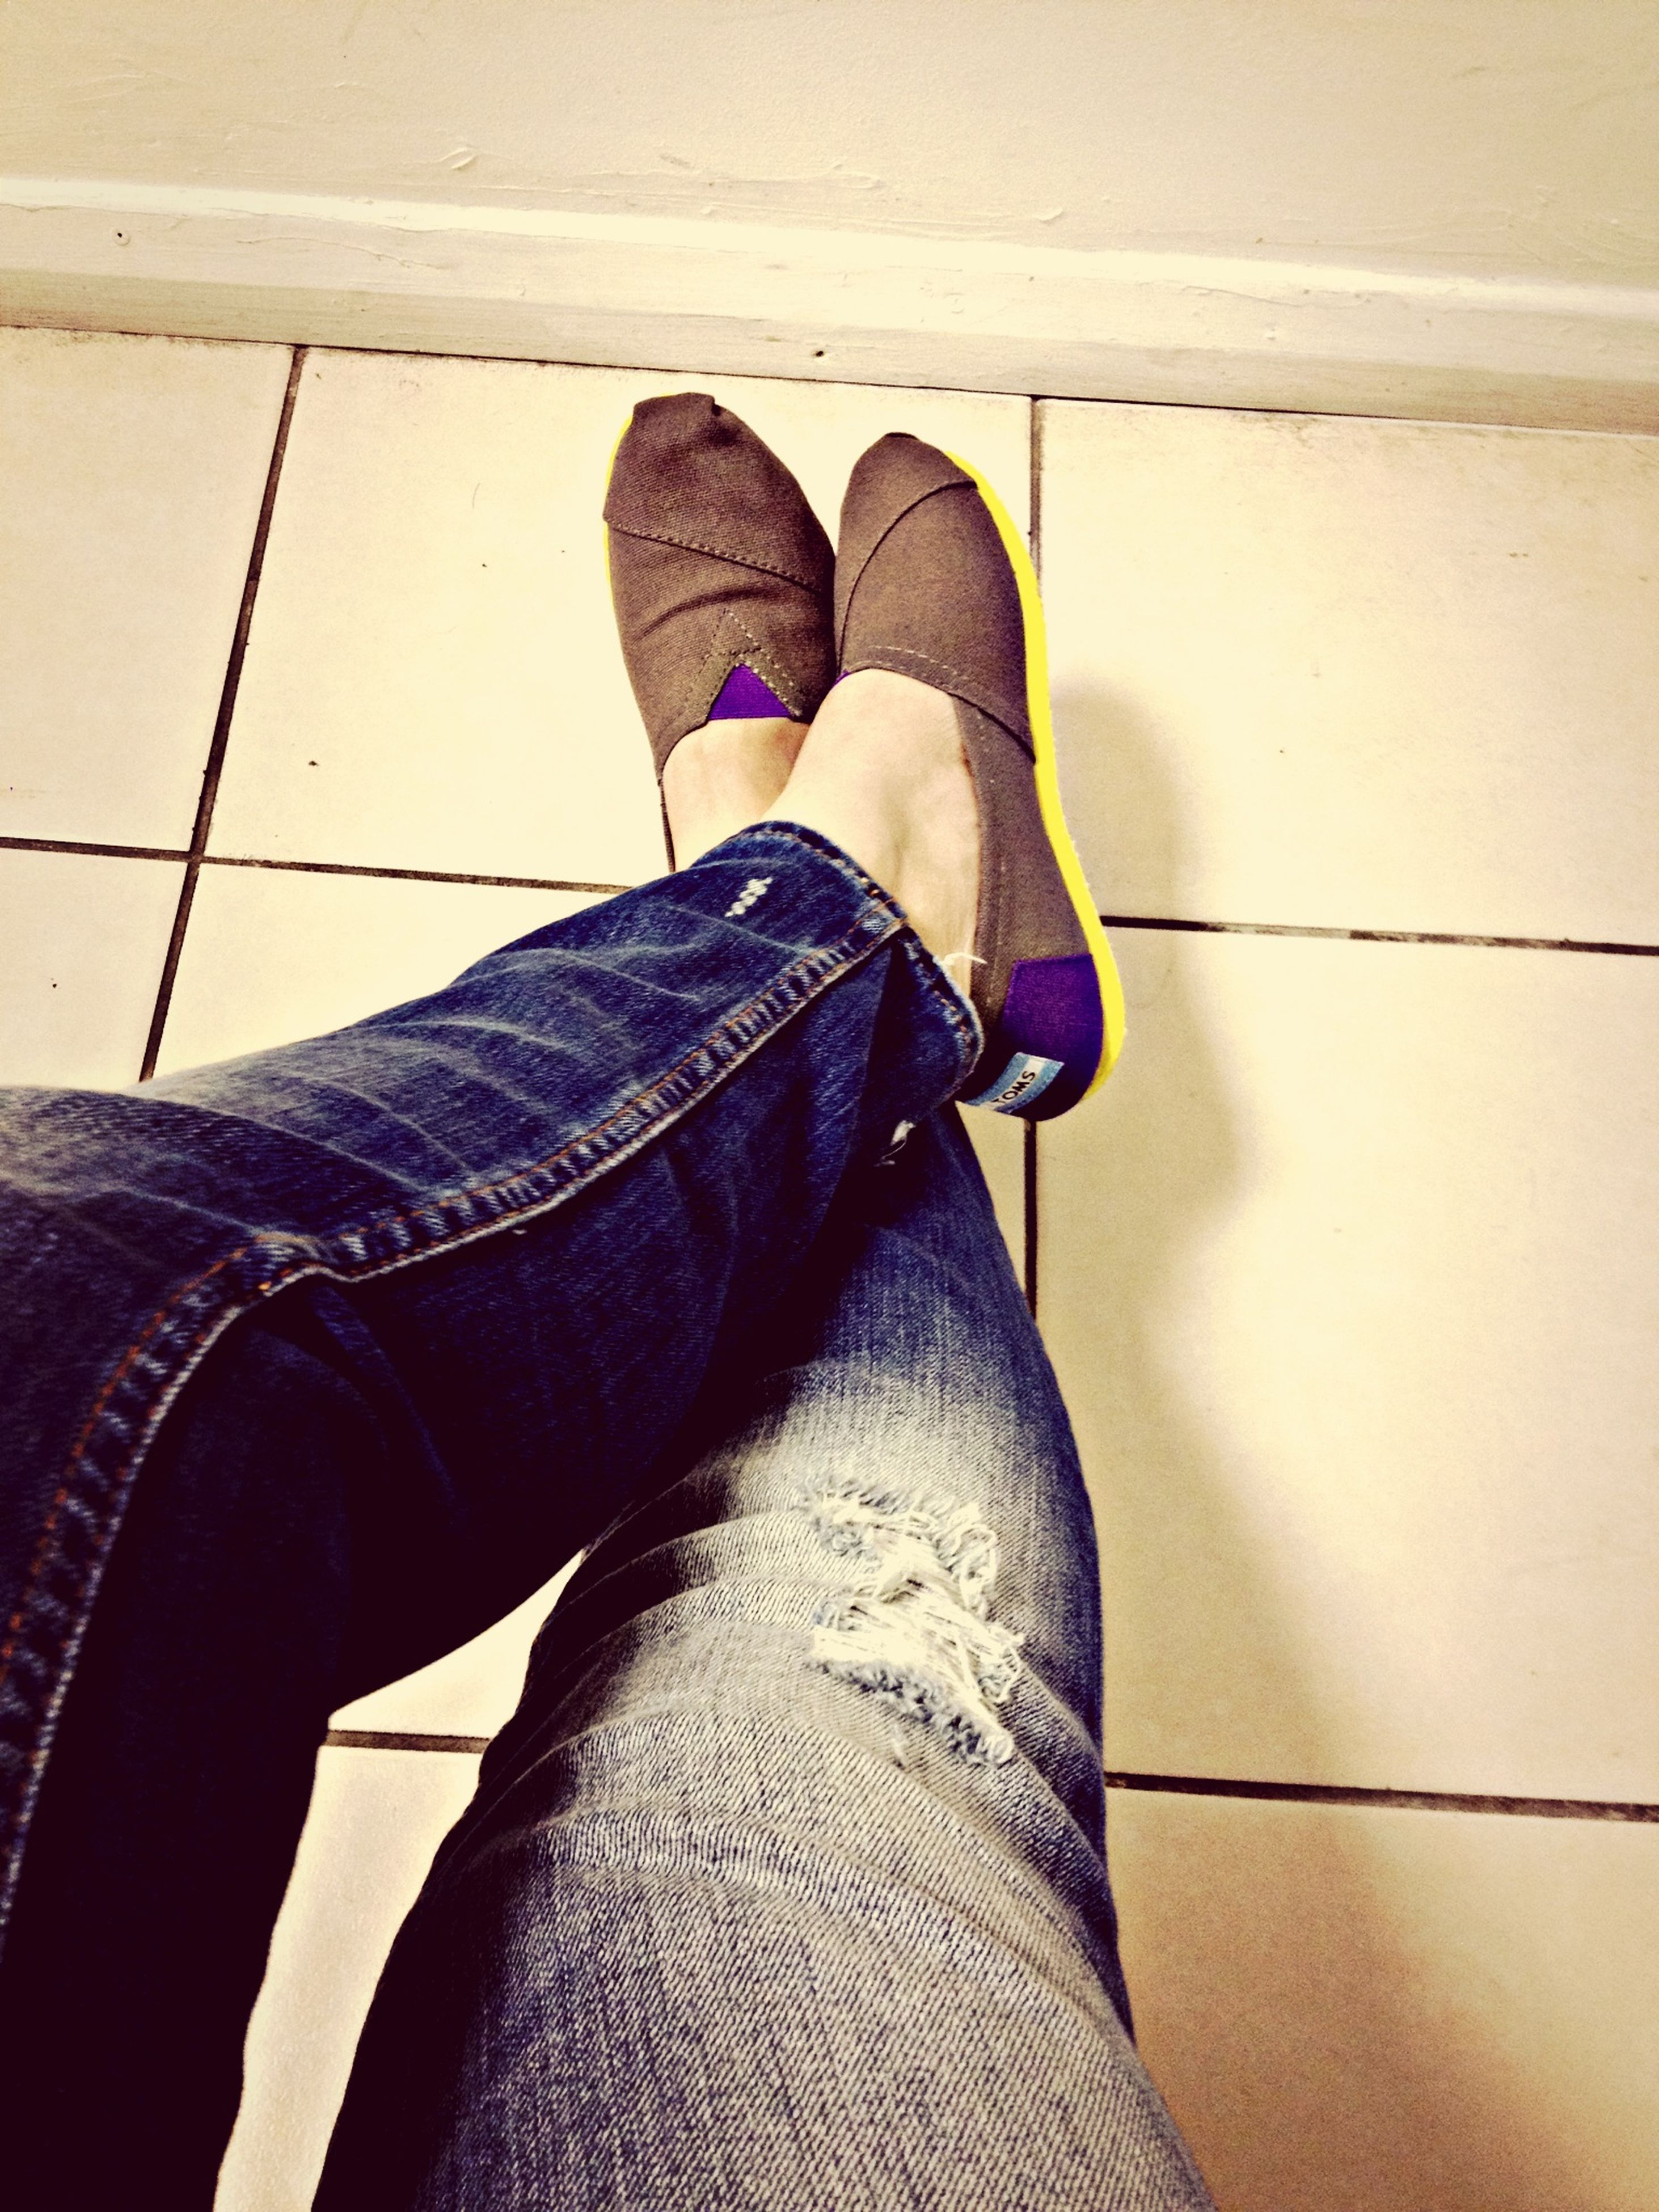 low section, person, shoe, jeans, lifestyles, personal perspective, footwear, standing, human foot, men, casual clothing, sitting, leisure activity, legs crossed at ankle, fashion, denim, relaxation